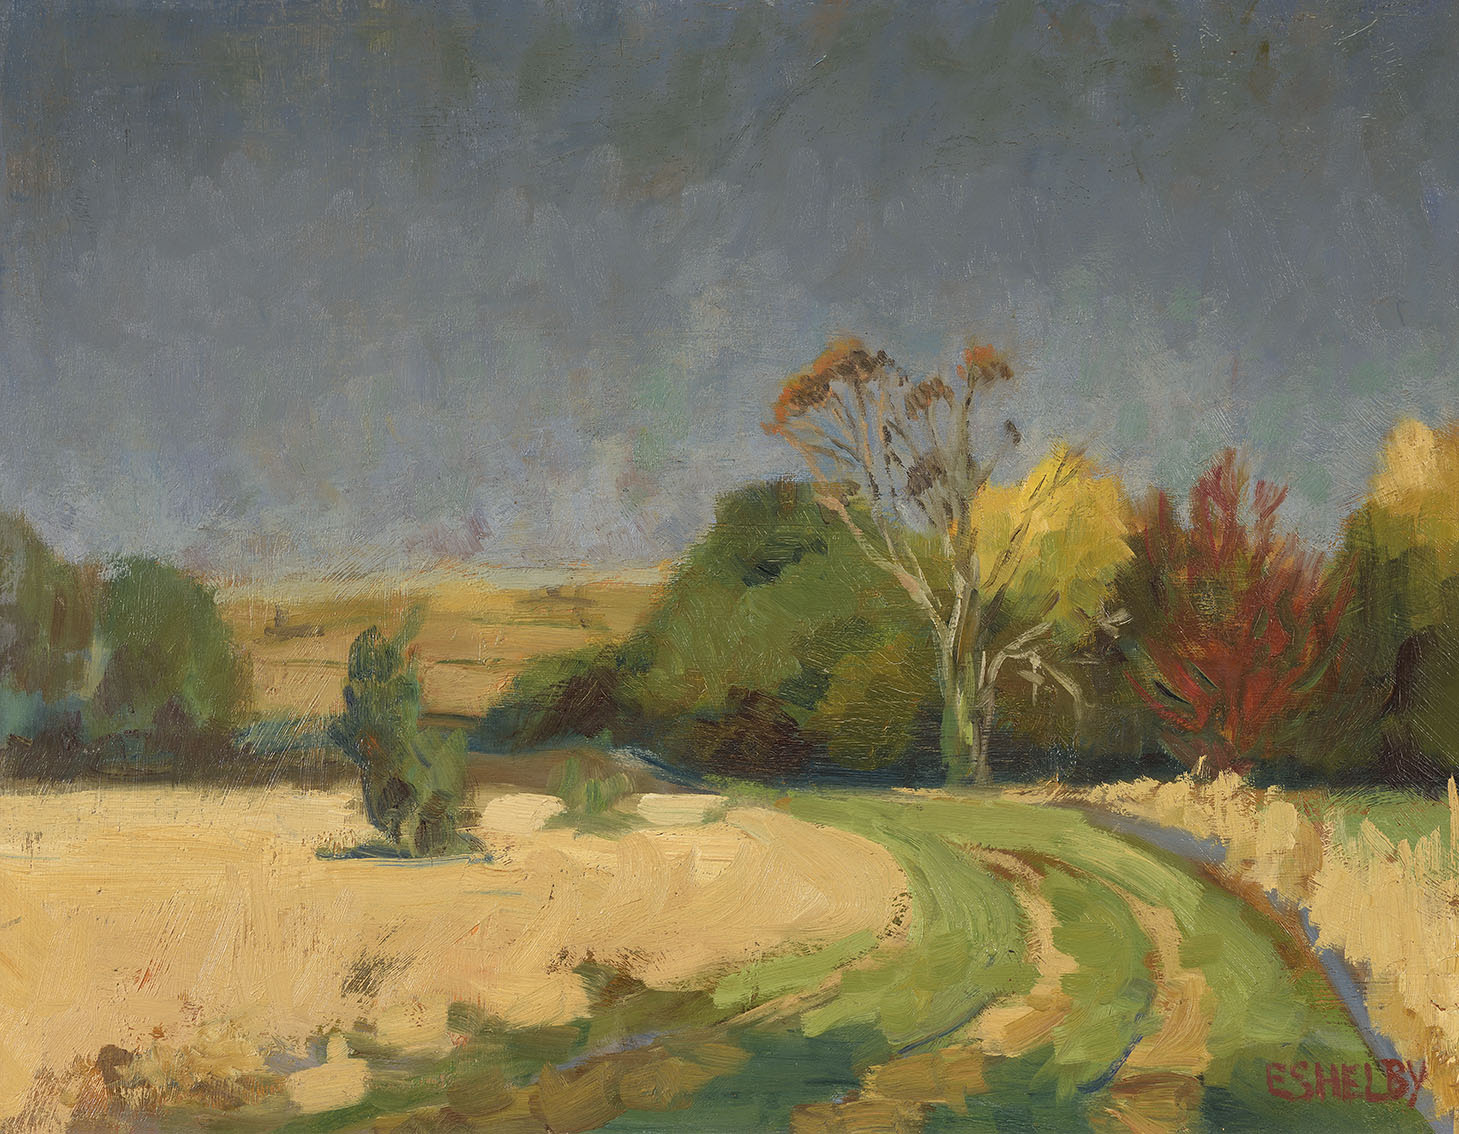 Sidney Eshelby    Harvest at Wormingford,  c.1982, Oil on board, 14 x 17 ¾ in, Signed  [CAS 42] Acquired in 1983